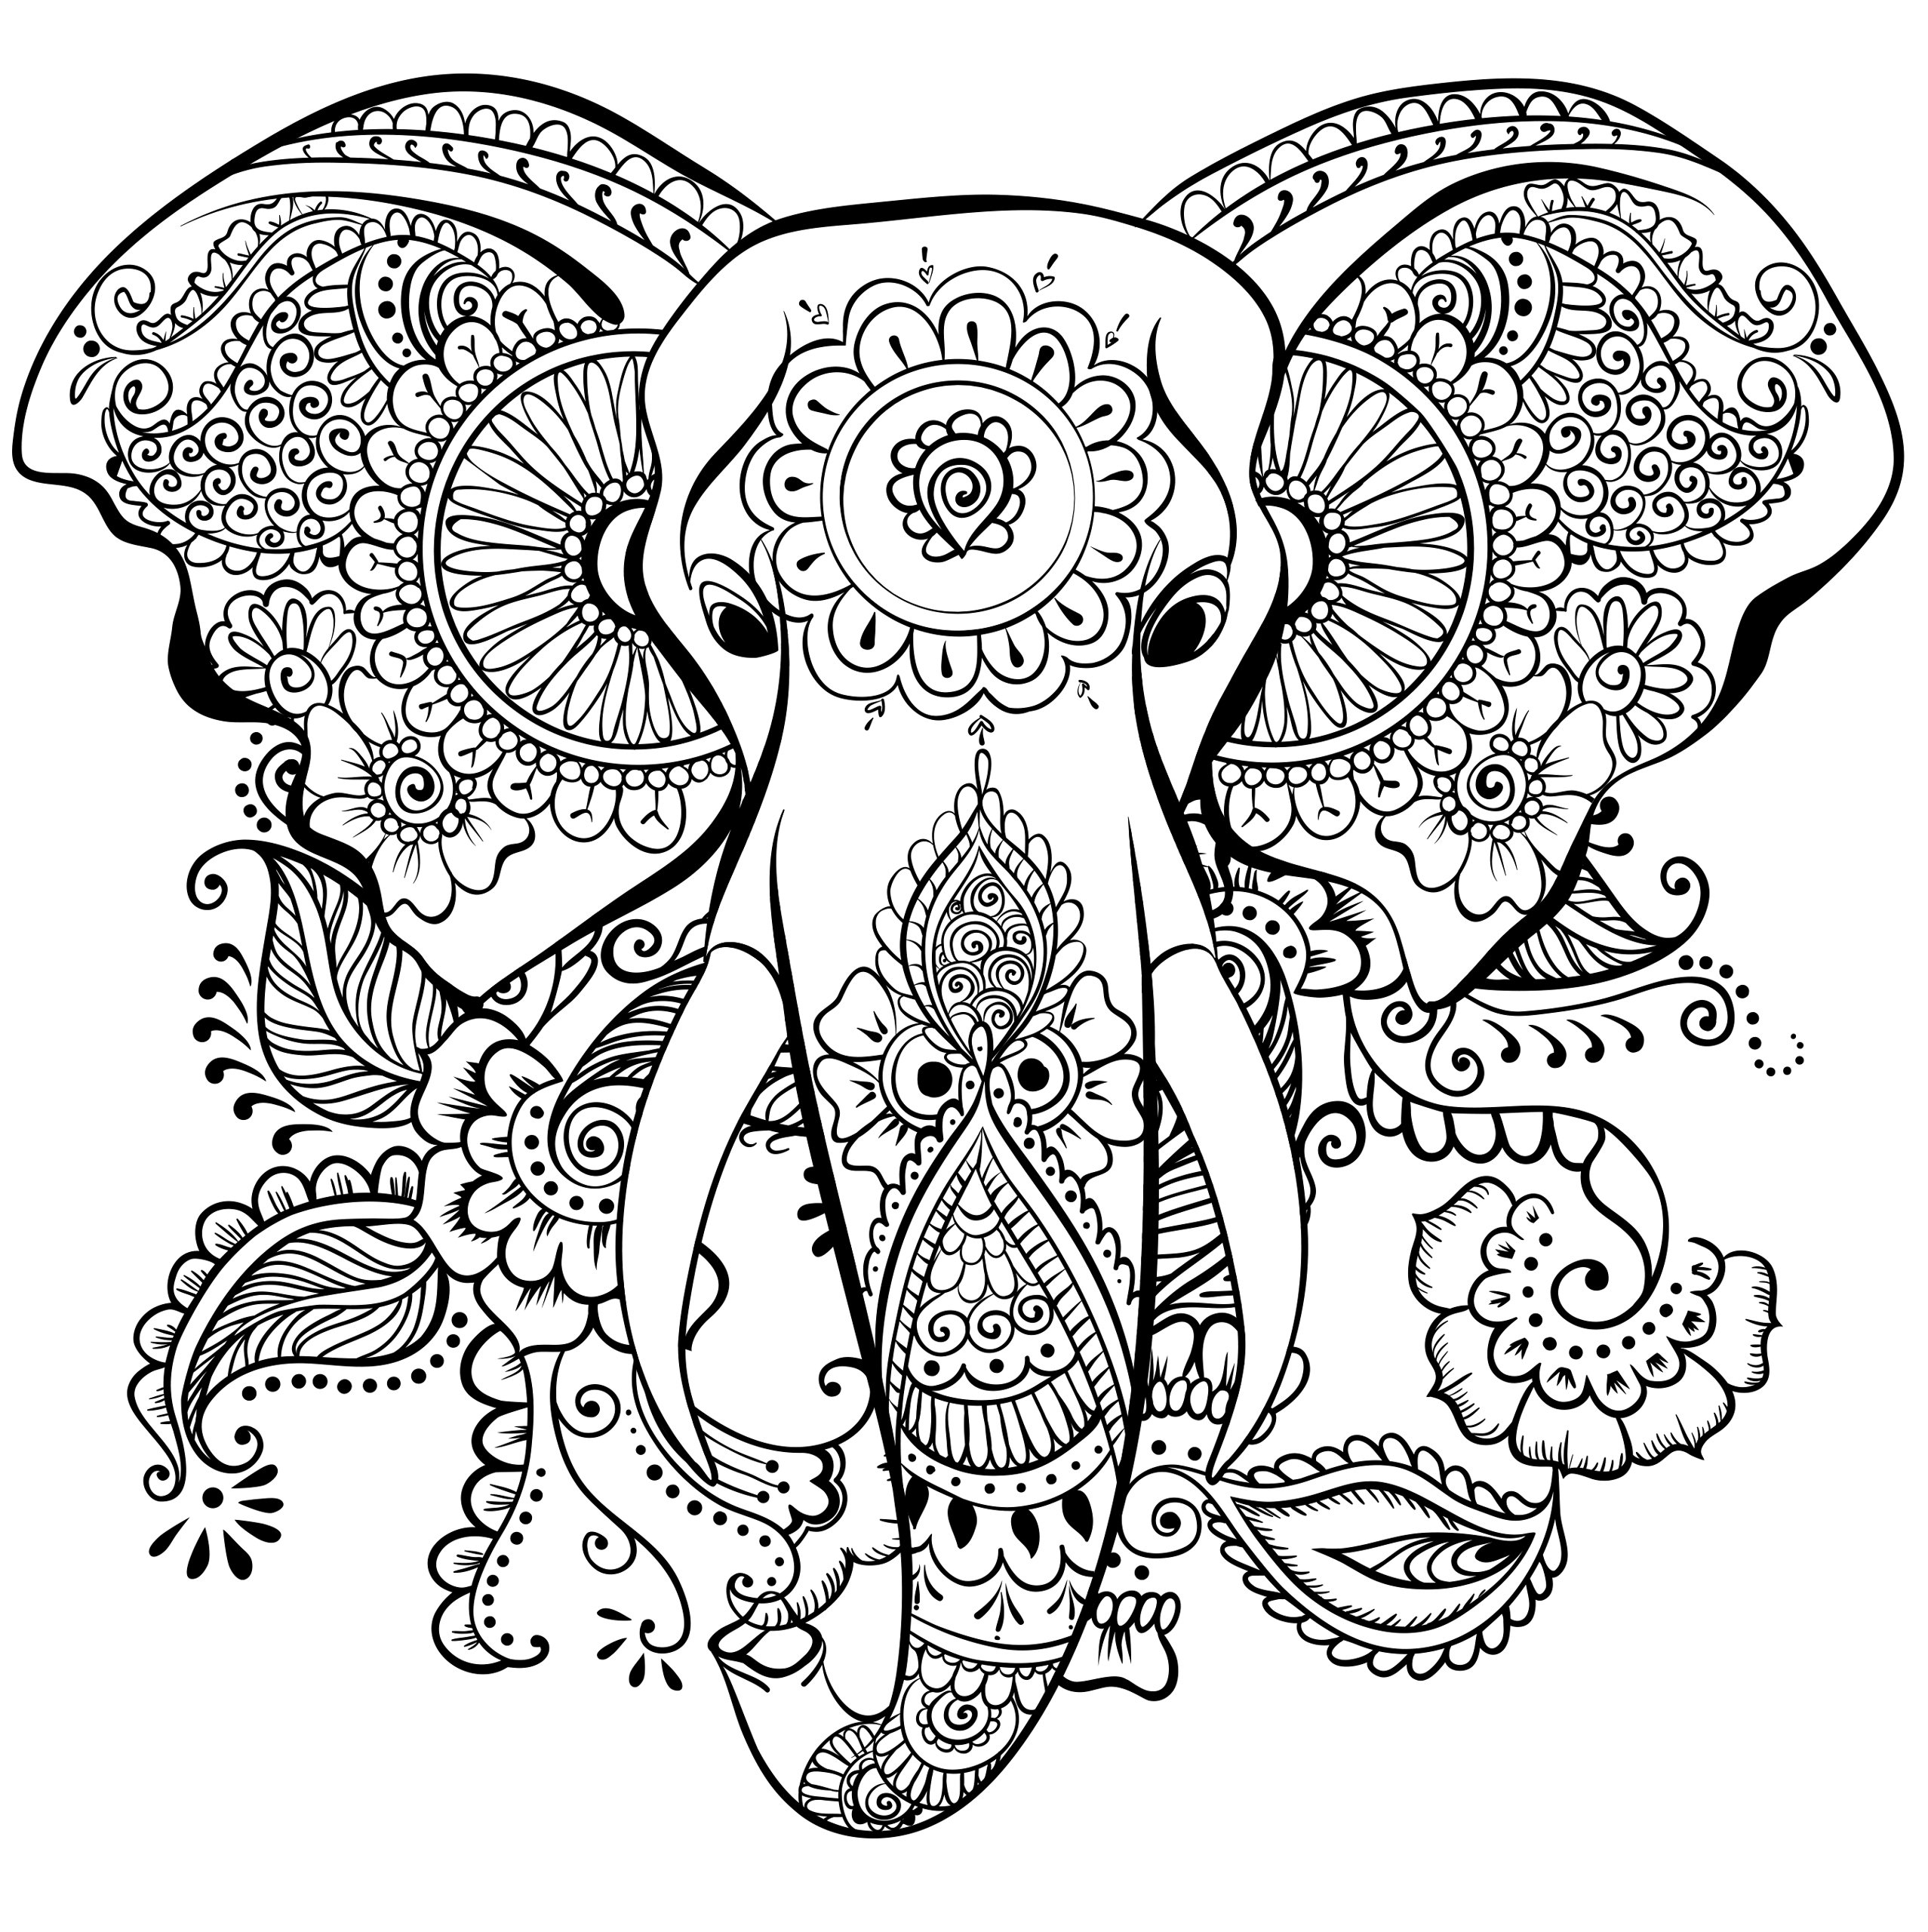 2555x2560 Homey Idea Design Art Coloring Pages Wild At Heart Adult Coloring